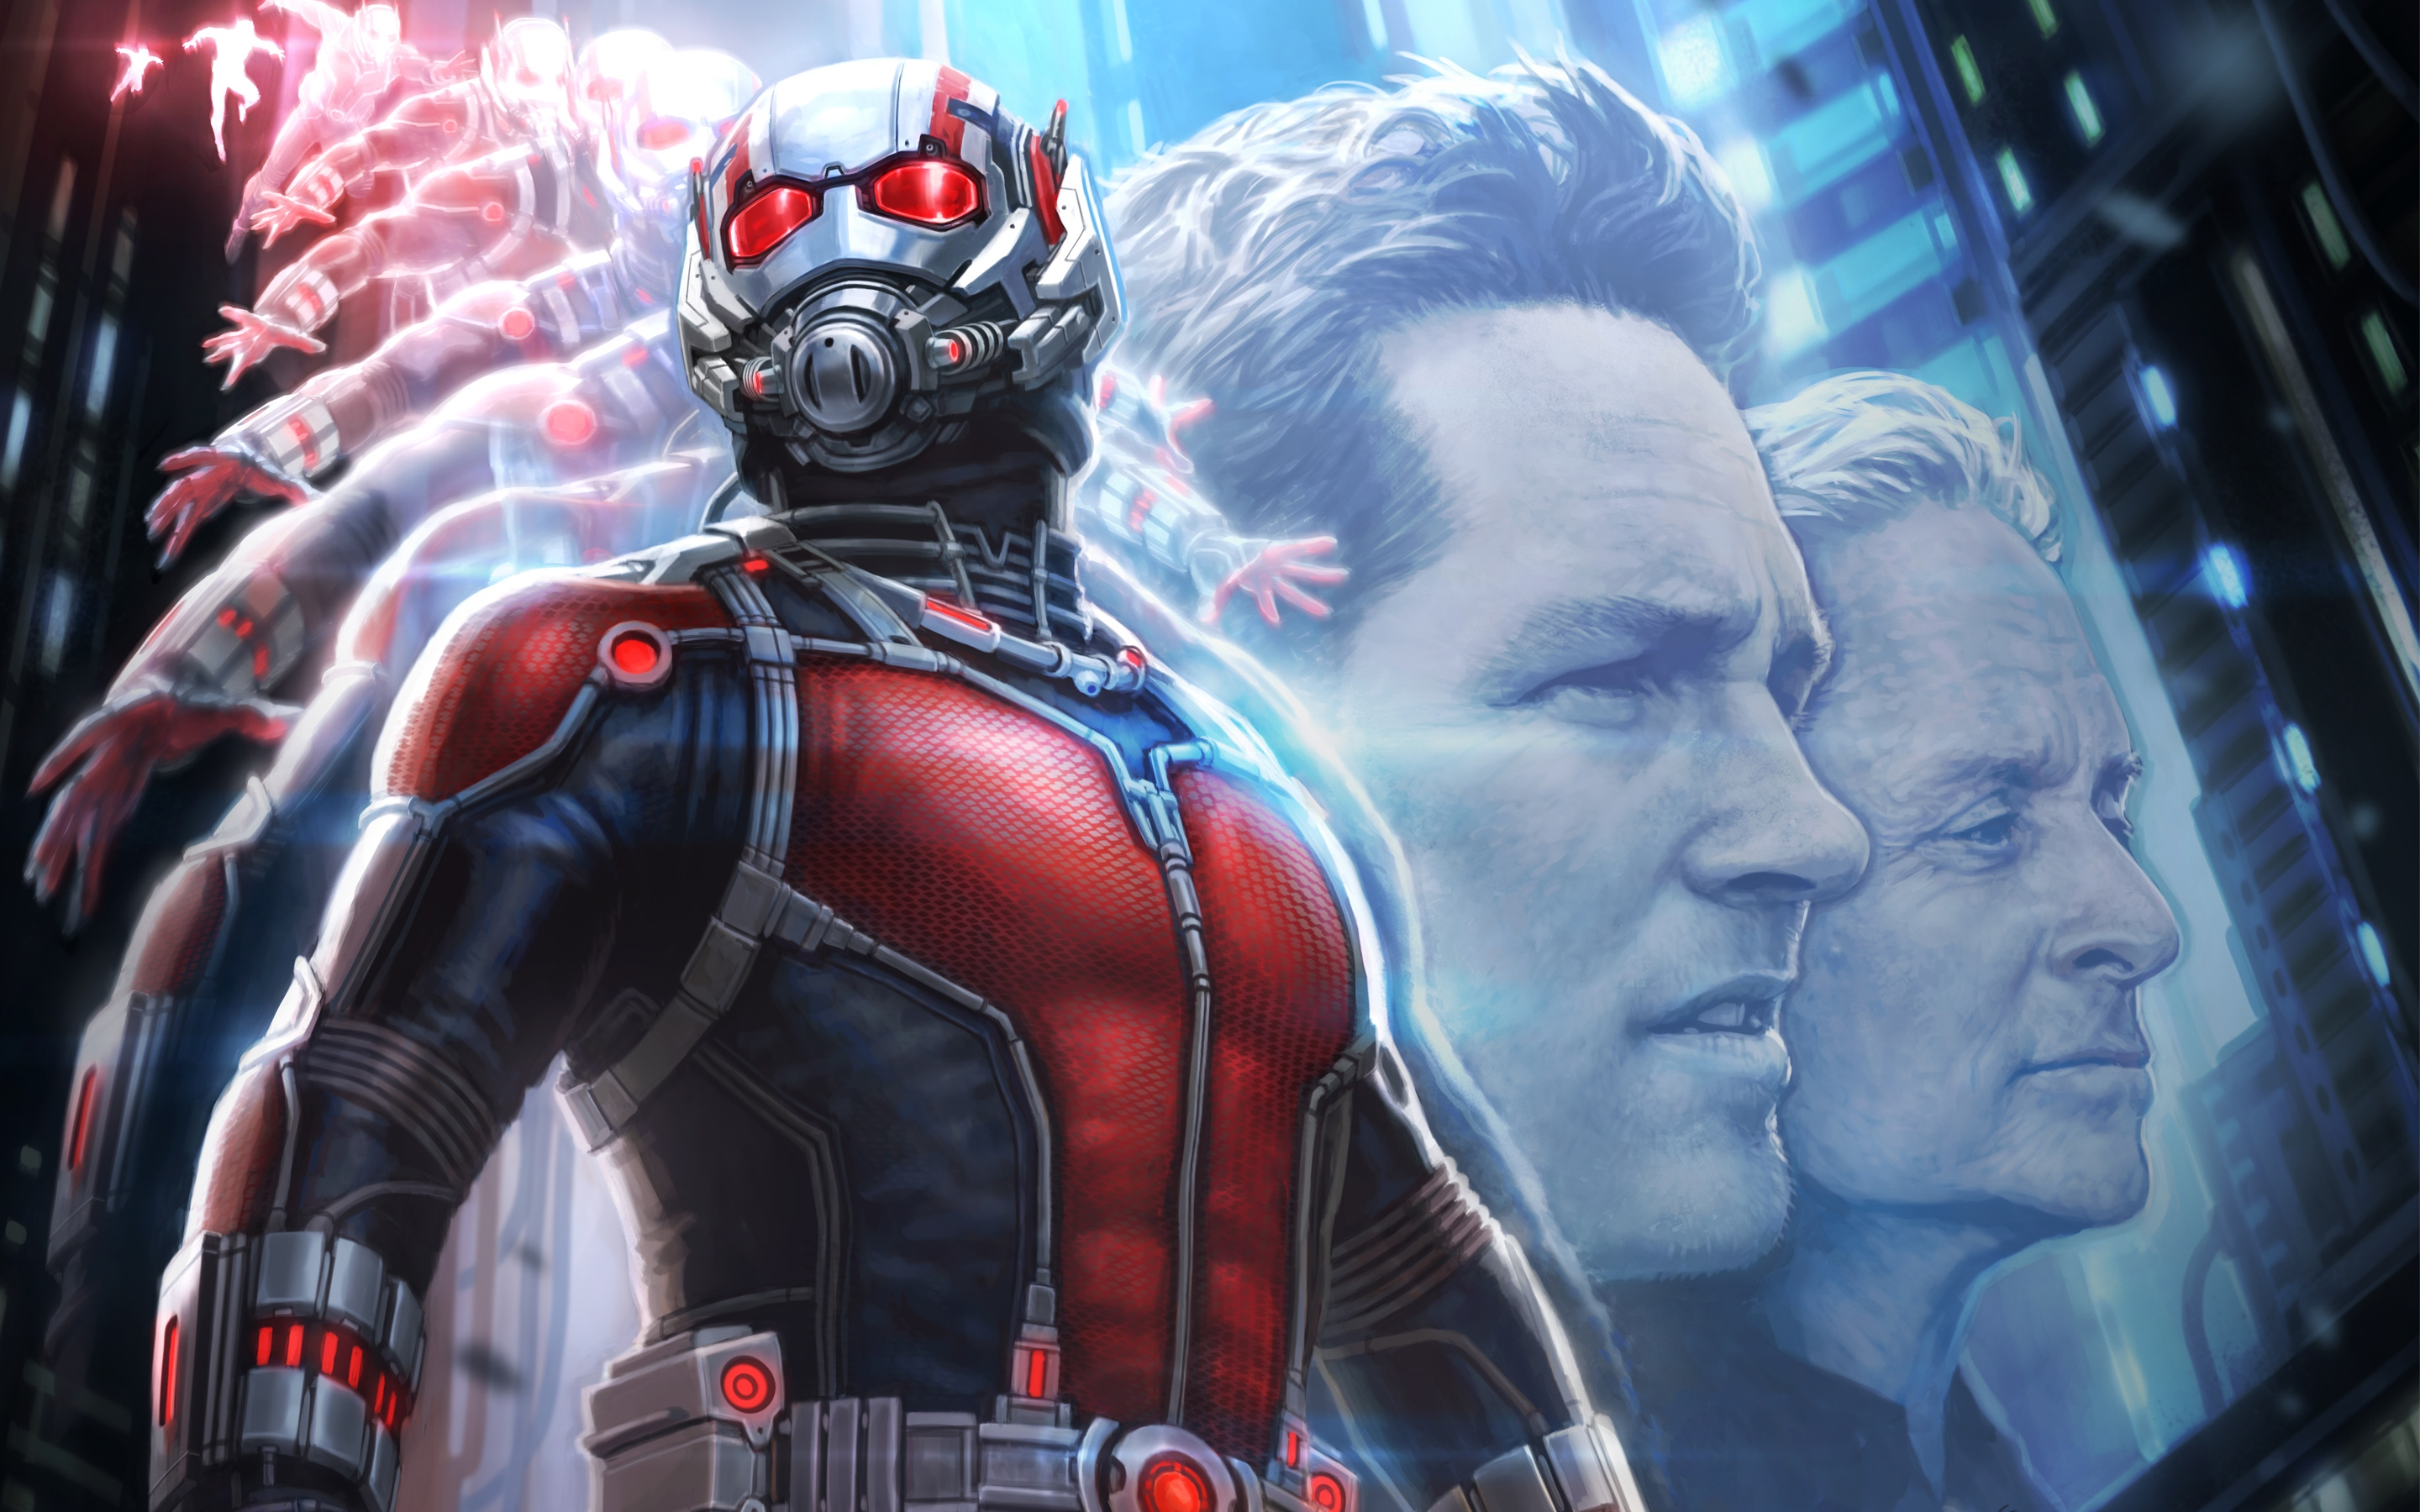 ant man concept art wallpaper